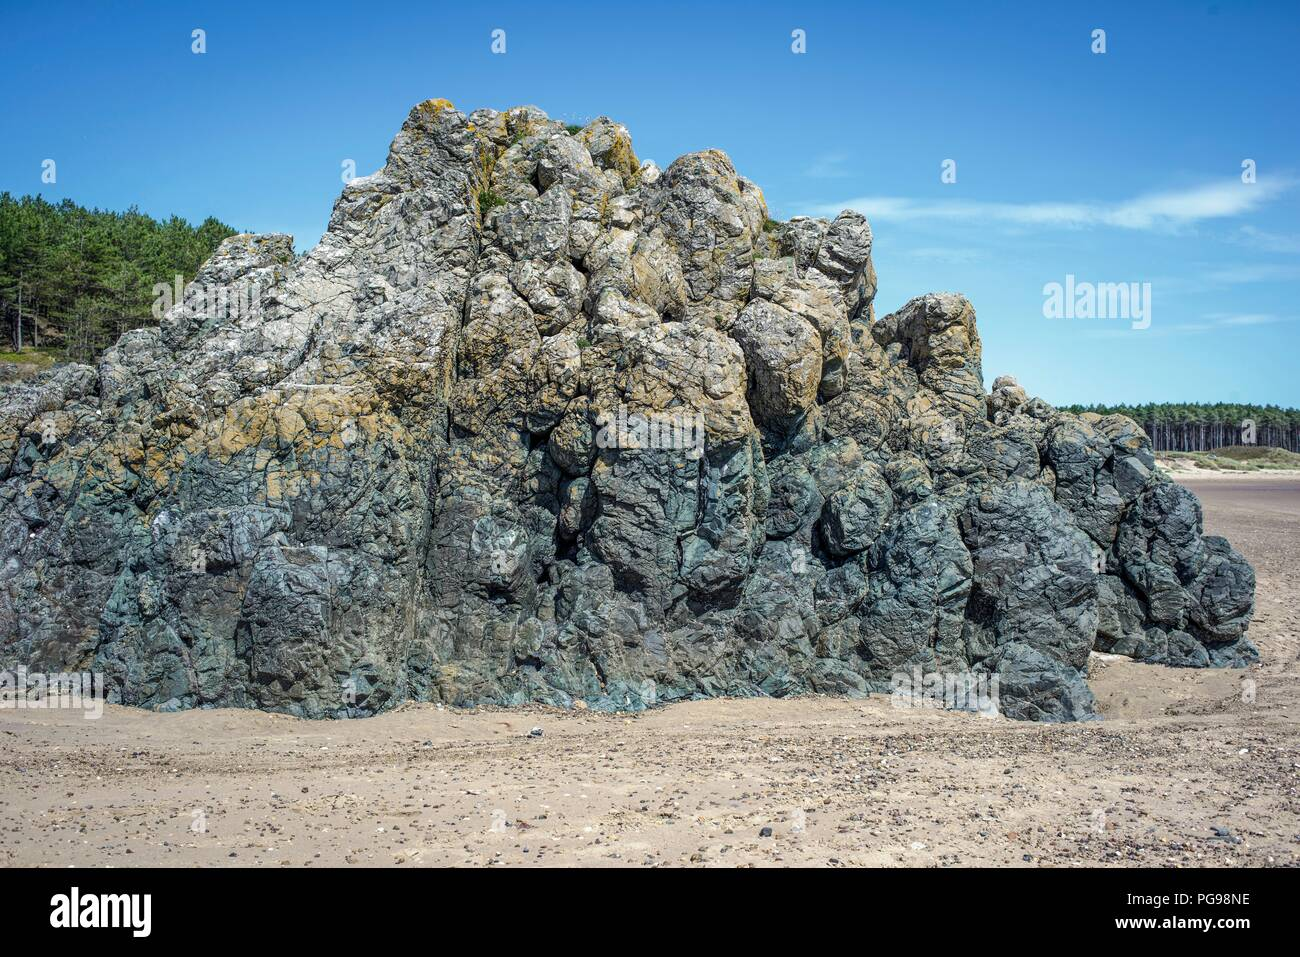 Basaltic pillow lava formed from underwater volcanic activity between 500 and 600 million years ago. Photographed at Newborough Sands, Anglesey, Wales, UK. Stock Photo